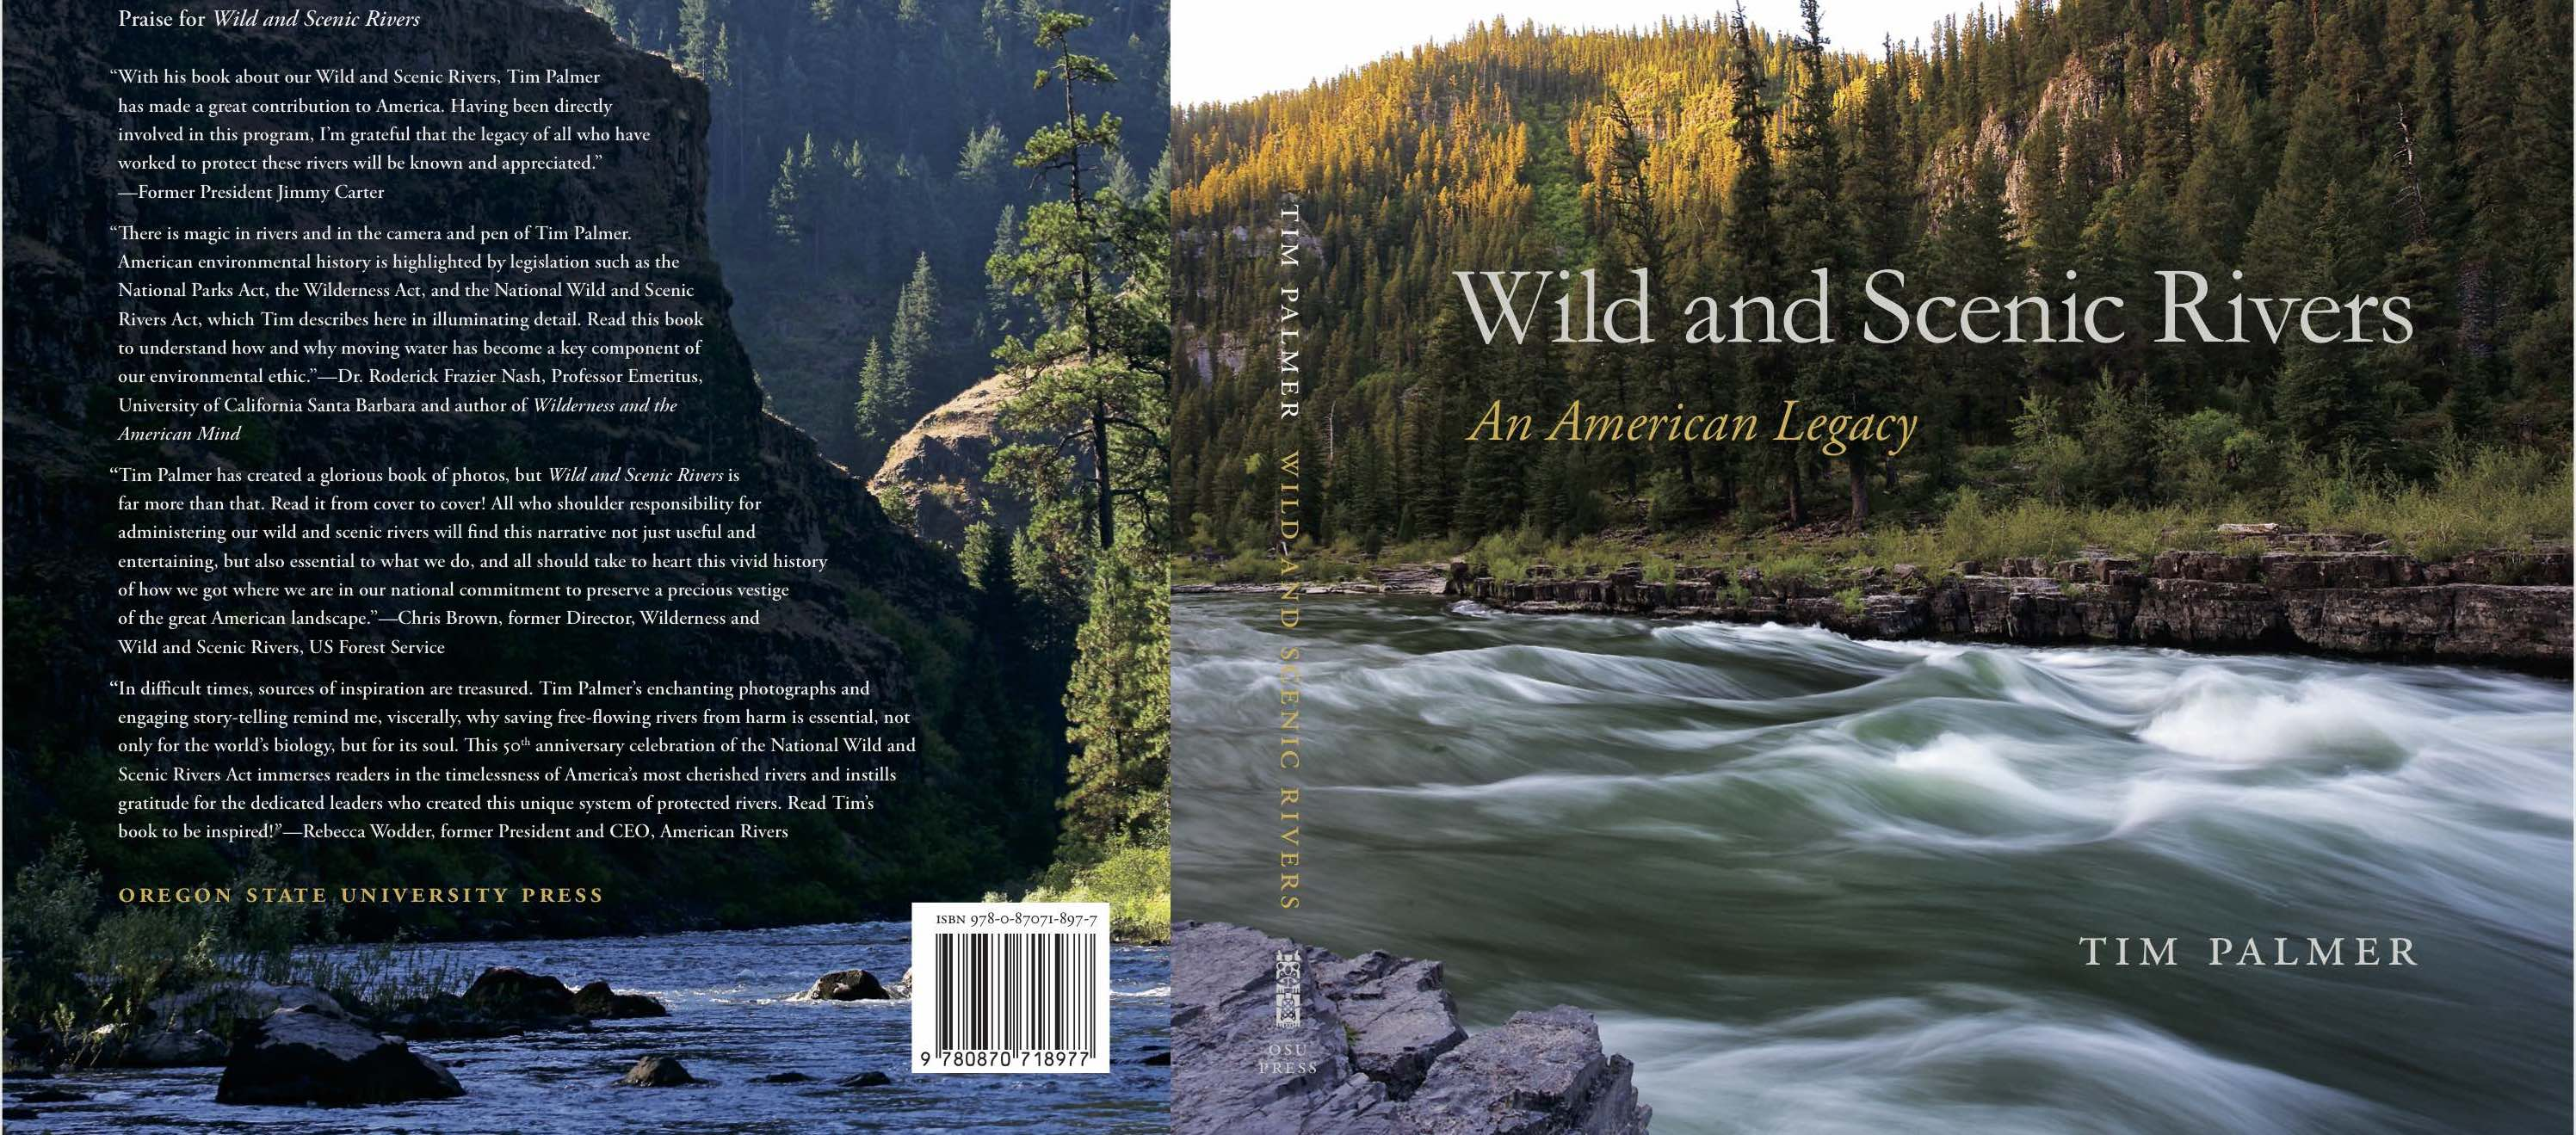 Cover of book including photo of Snake River